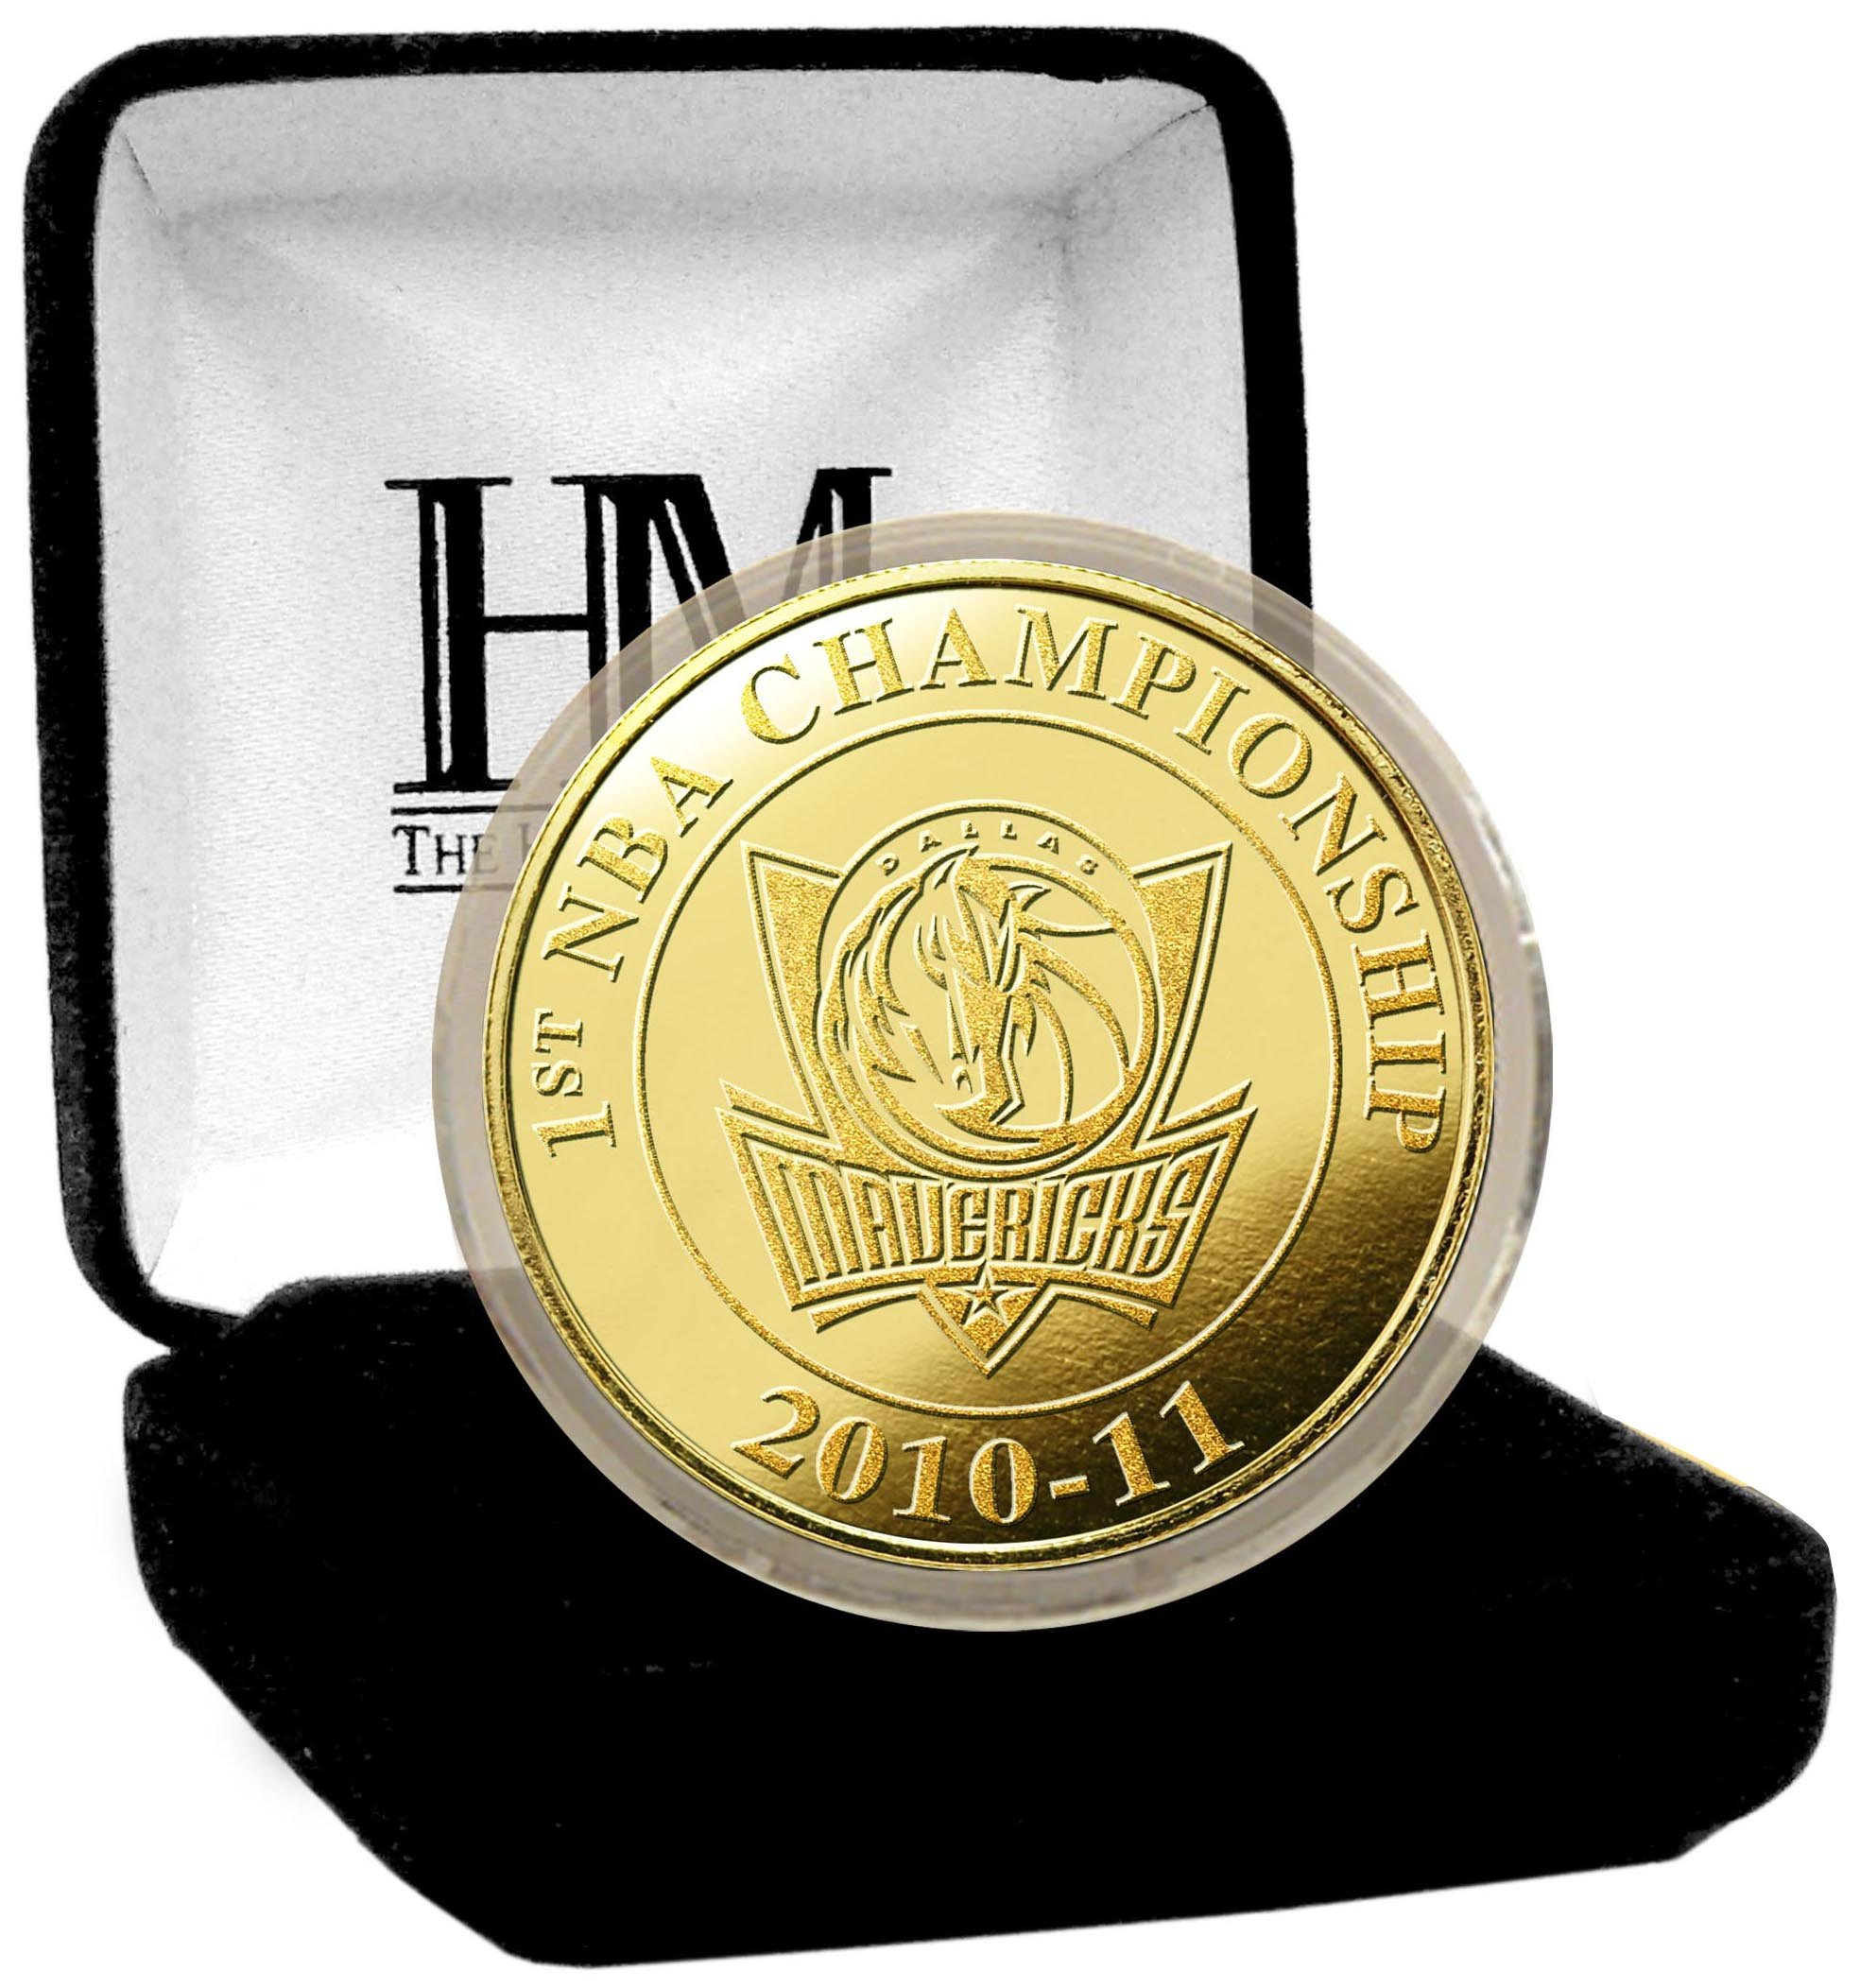 The Highland Mint NBA 2011 Champions 24KT Gold Coin